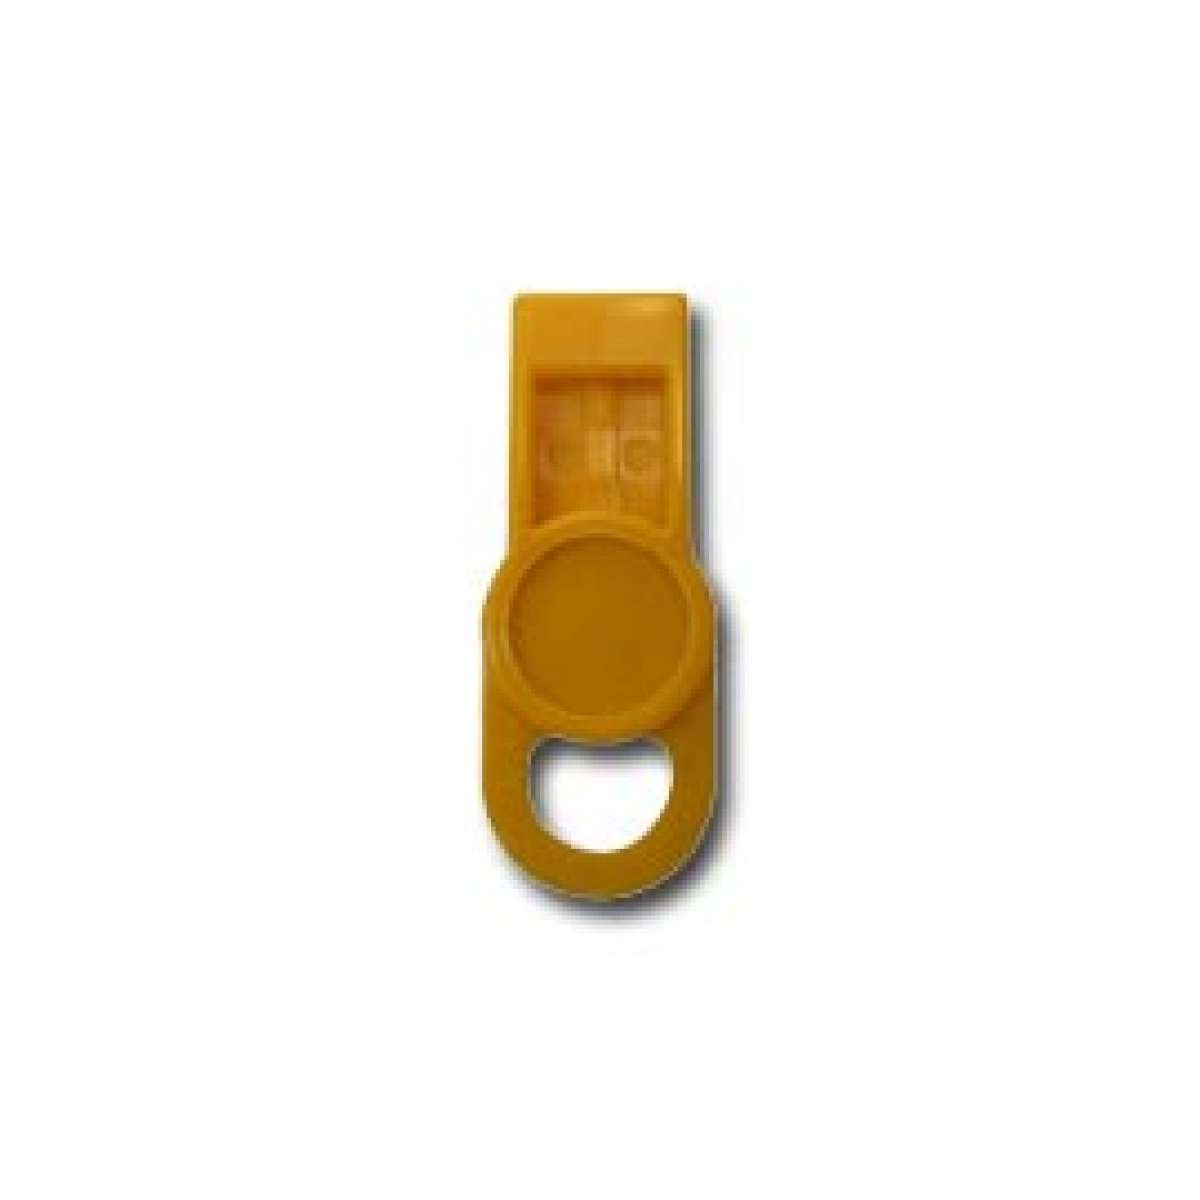 ID Washer Tab - LABEL SAFE - Yellow